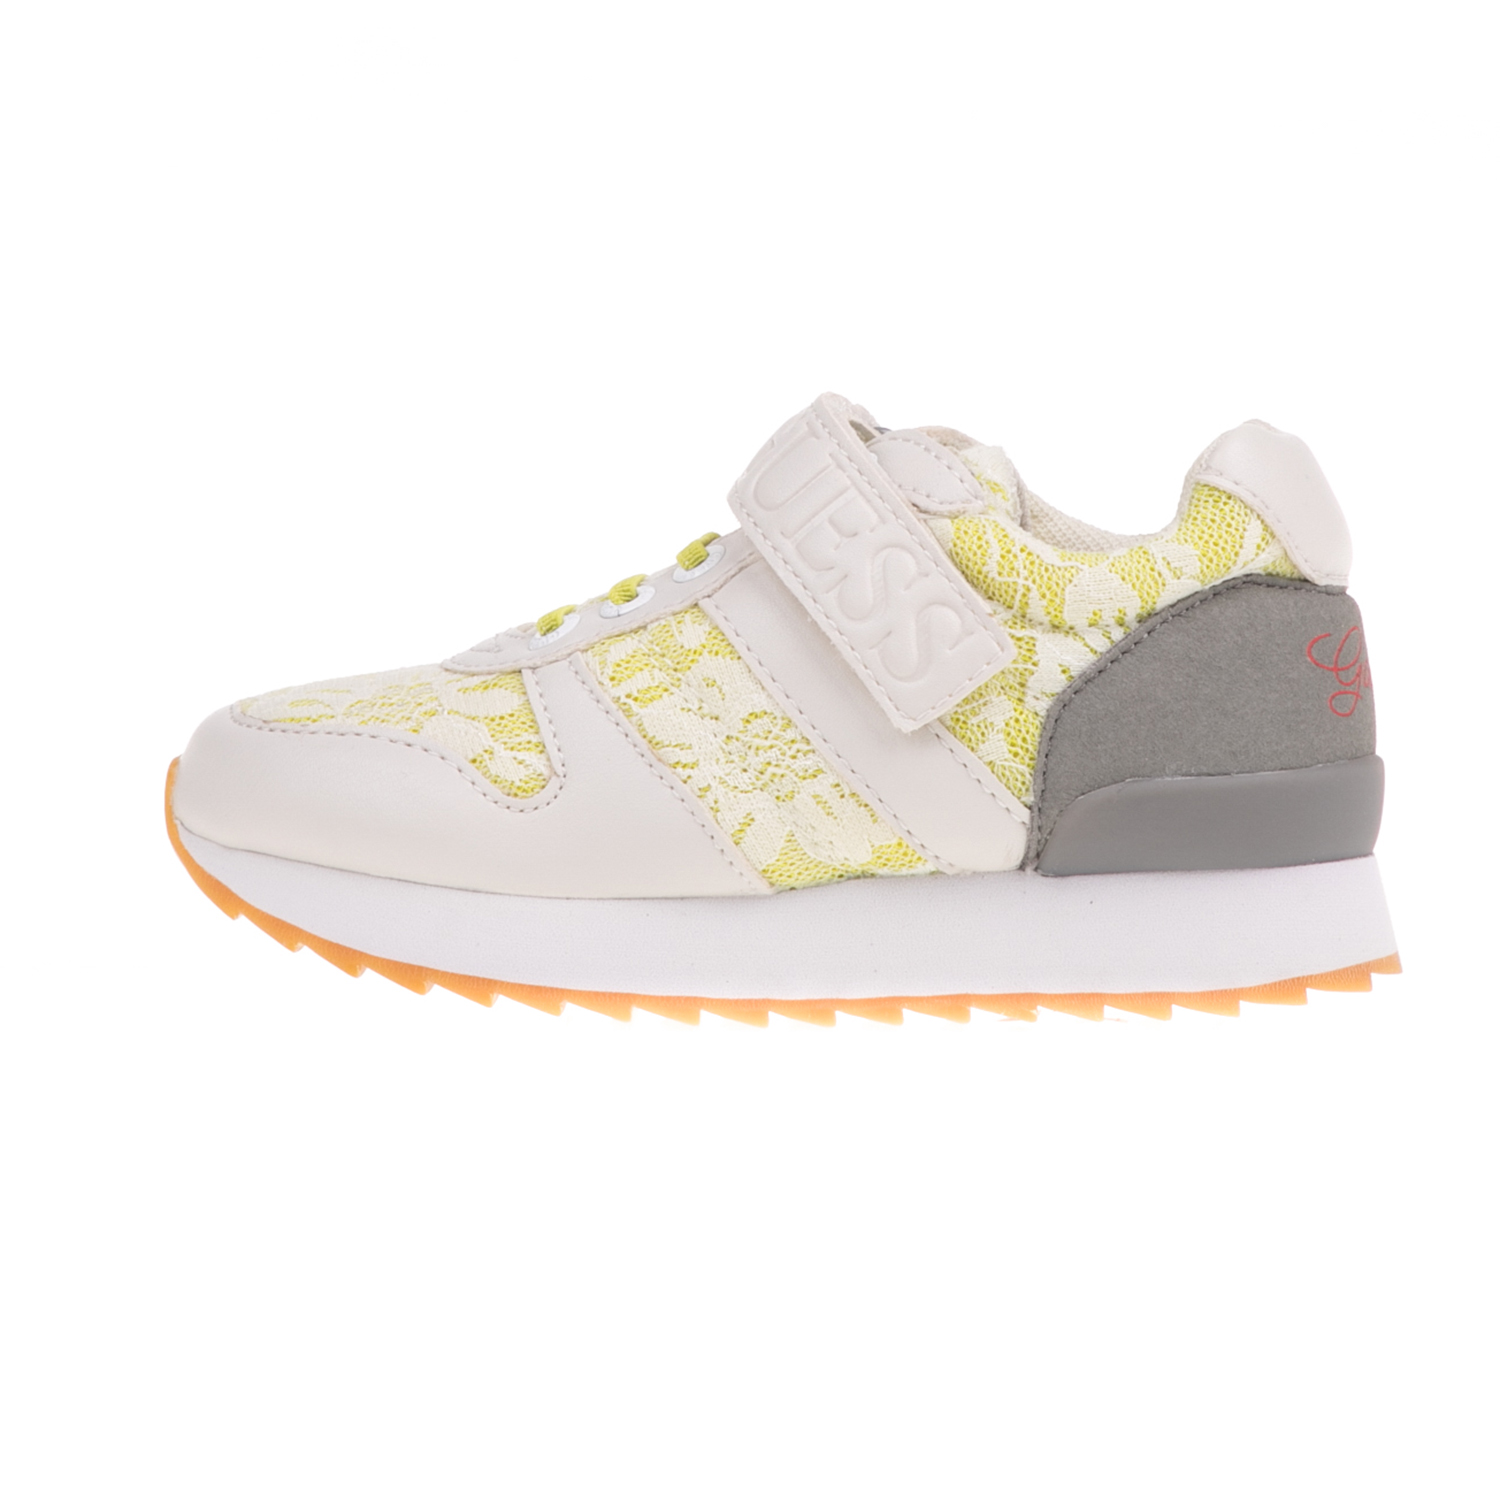 GUESS KIDS - Κοριτσίστικα sneakers GUESS KIDS REBECCA λευκά-κίτρινα παιδικά girls παπούτσια sneakers